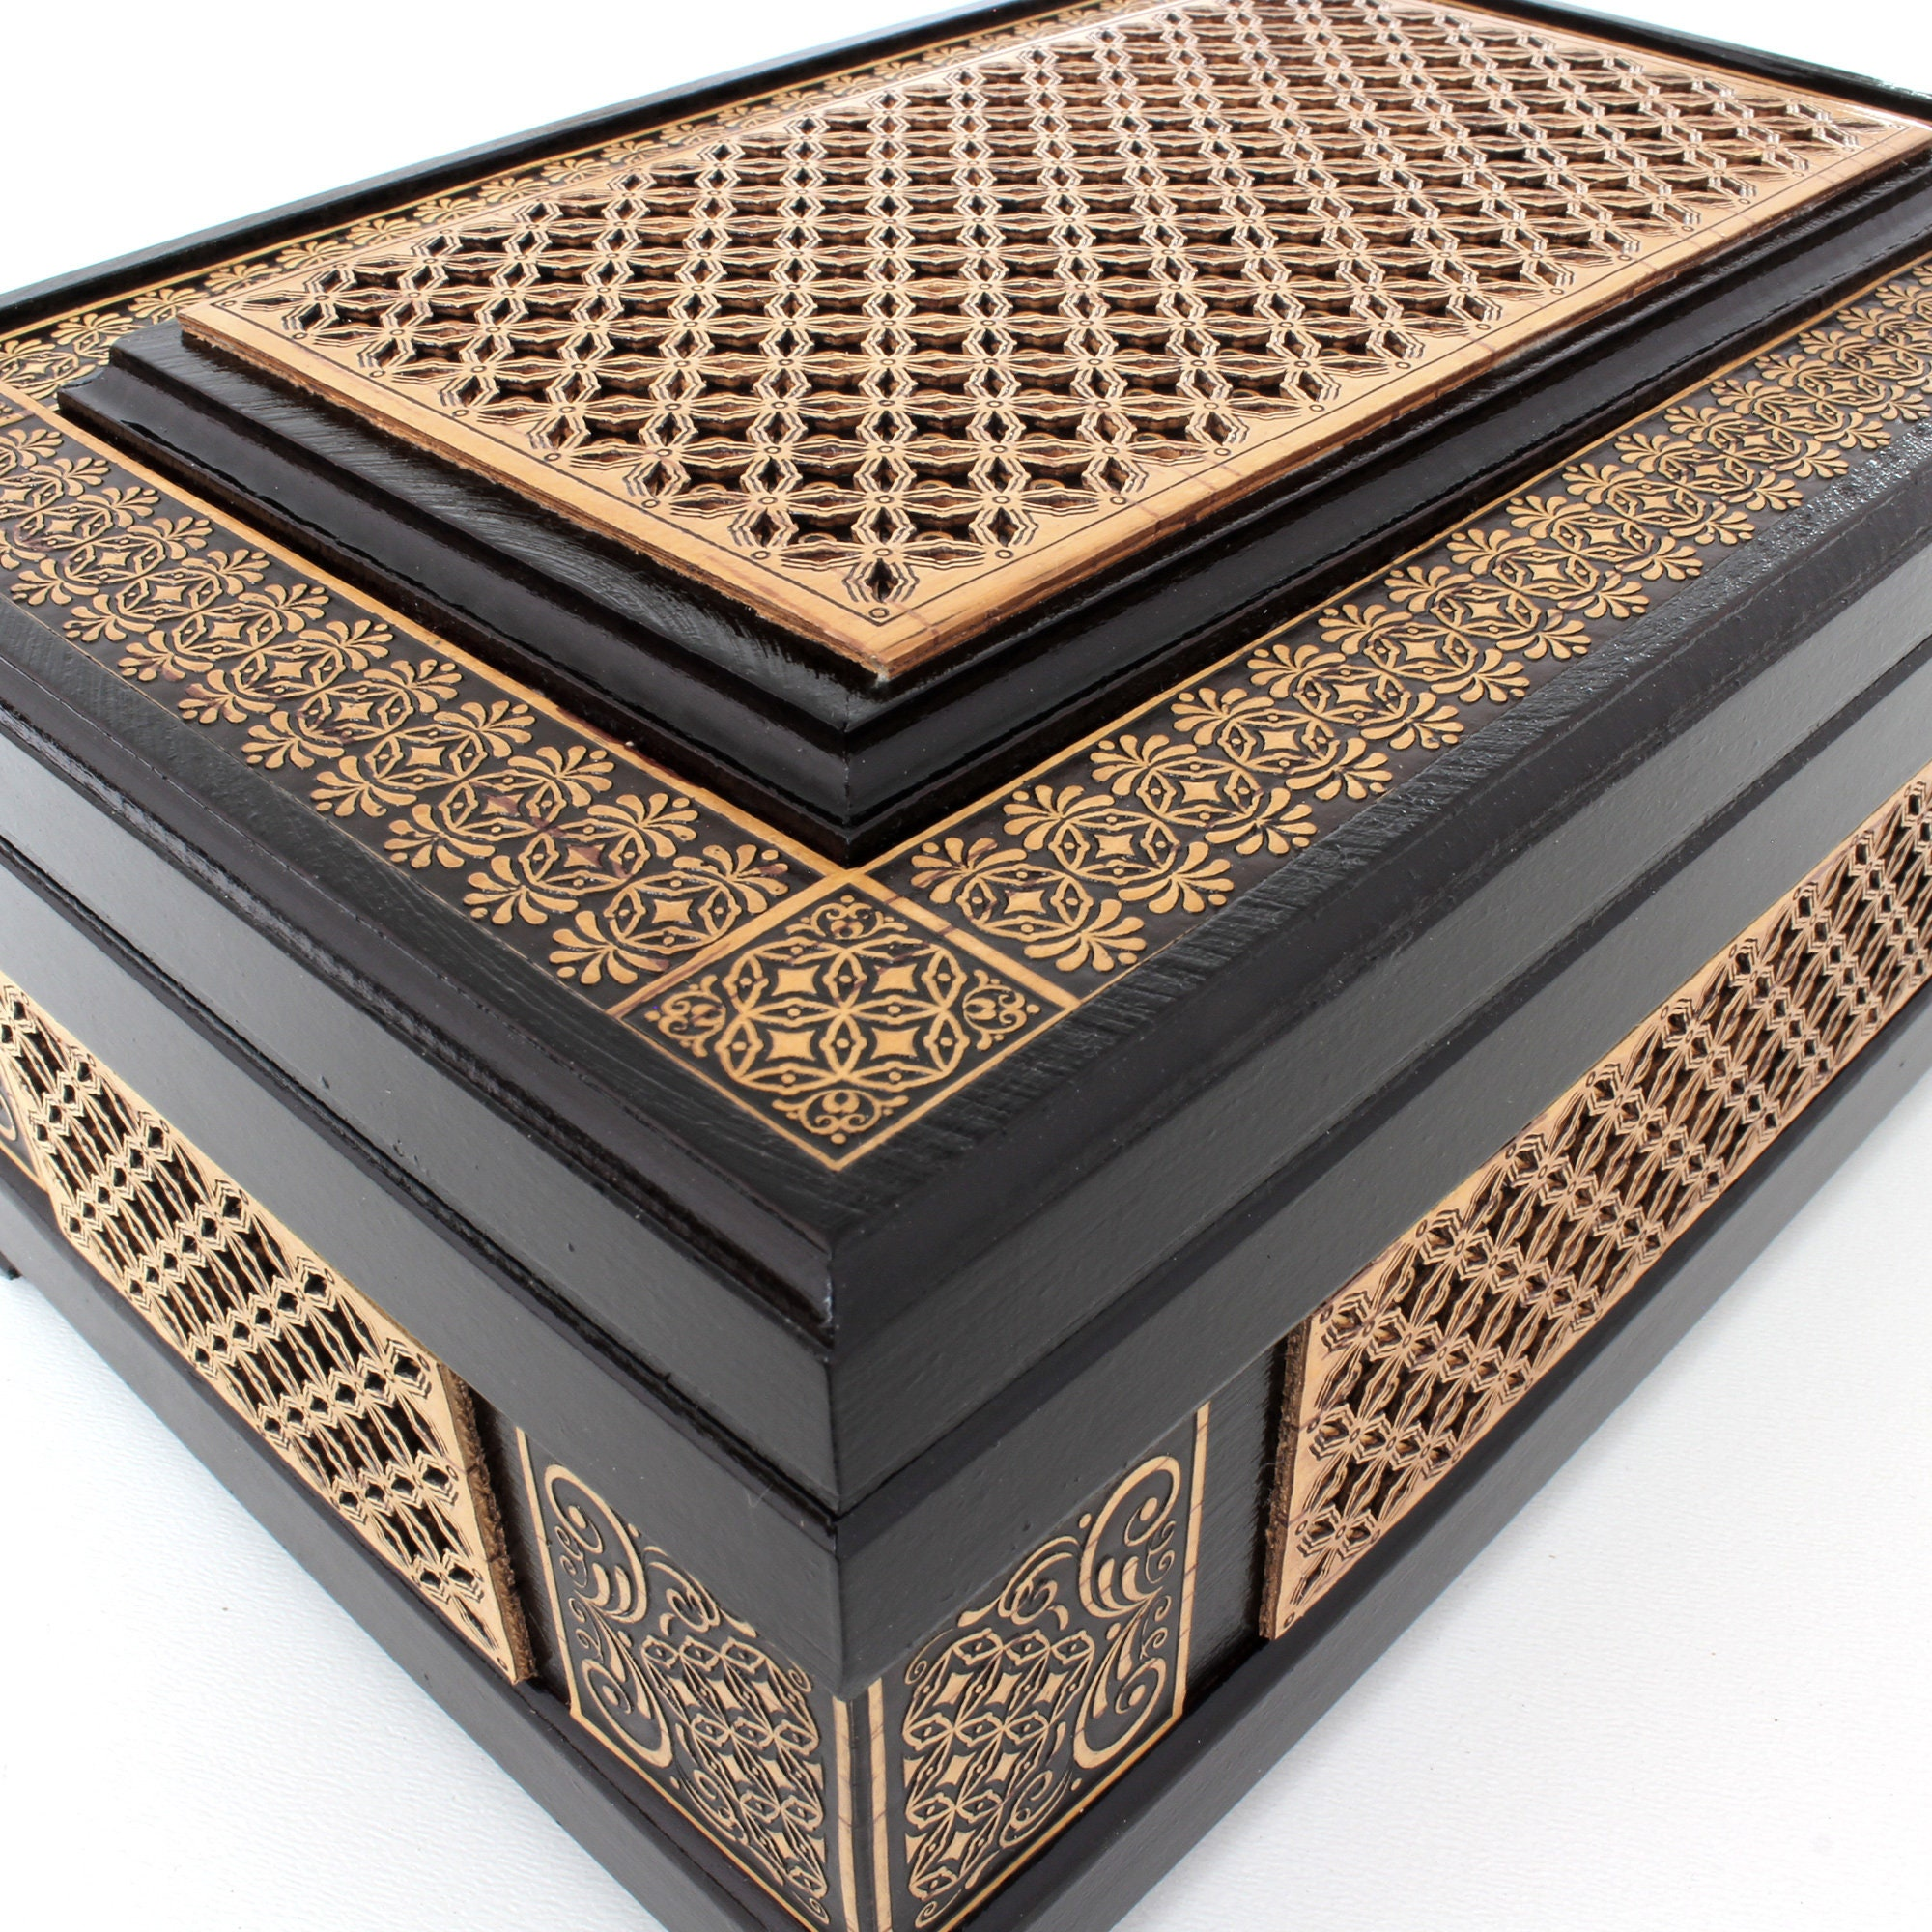 Large wooden chest inlaid with birch bark. Decorative jewelry box, handmade - intricate carving. Velvet lining inside.